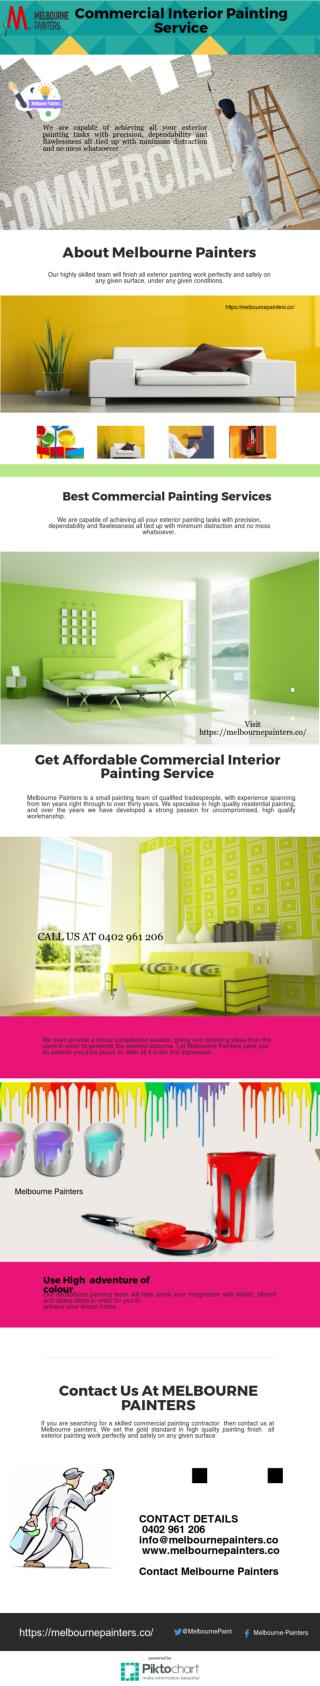 Find Commercial Painting Melbourne